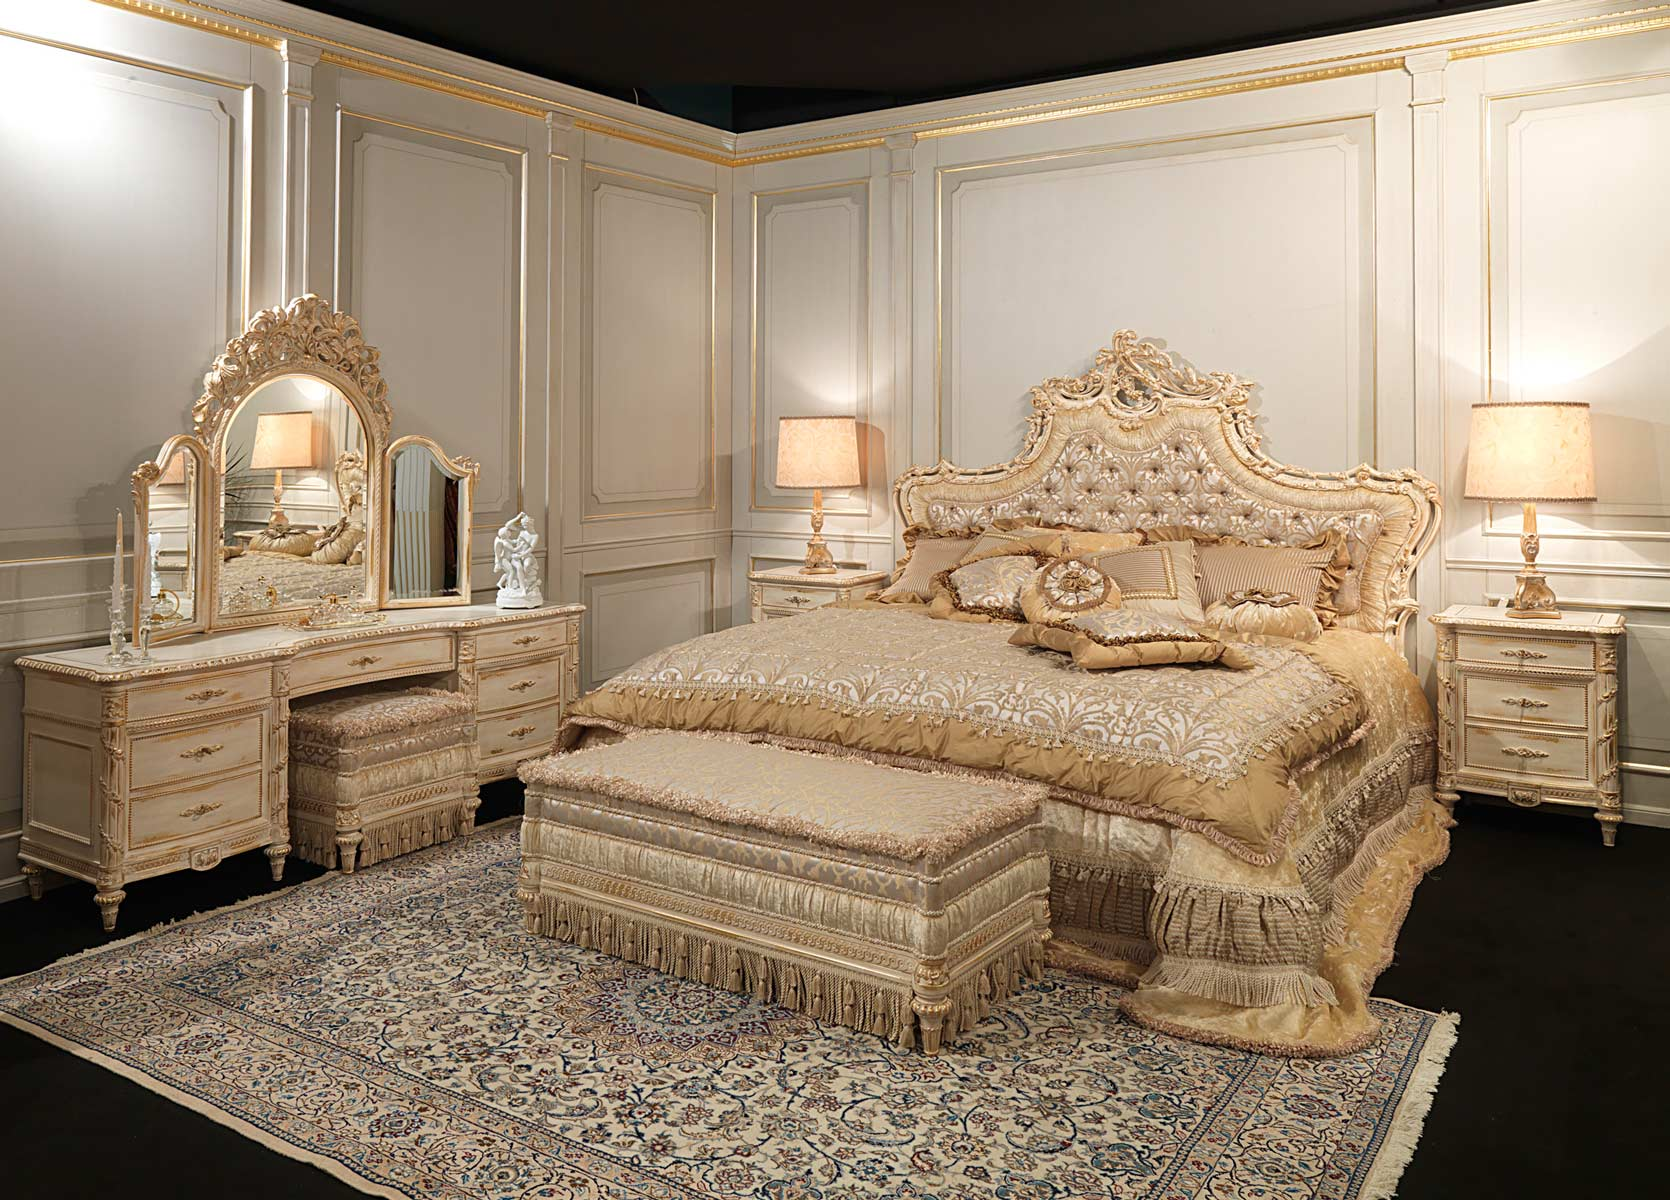 Cucina Classica Nera Classic Louis Xvi Bedroom, Capitonnè Headboard With Rich